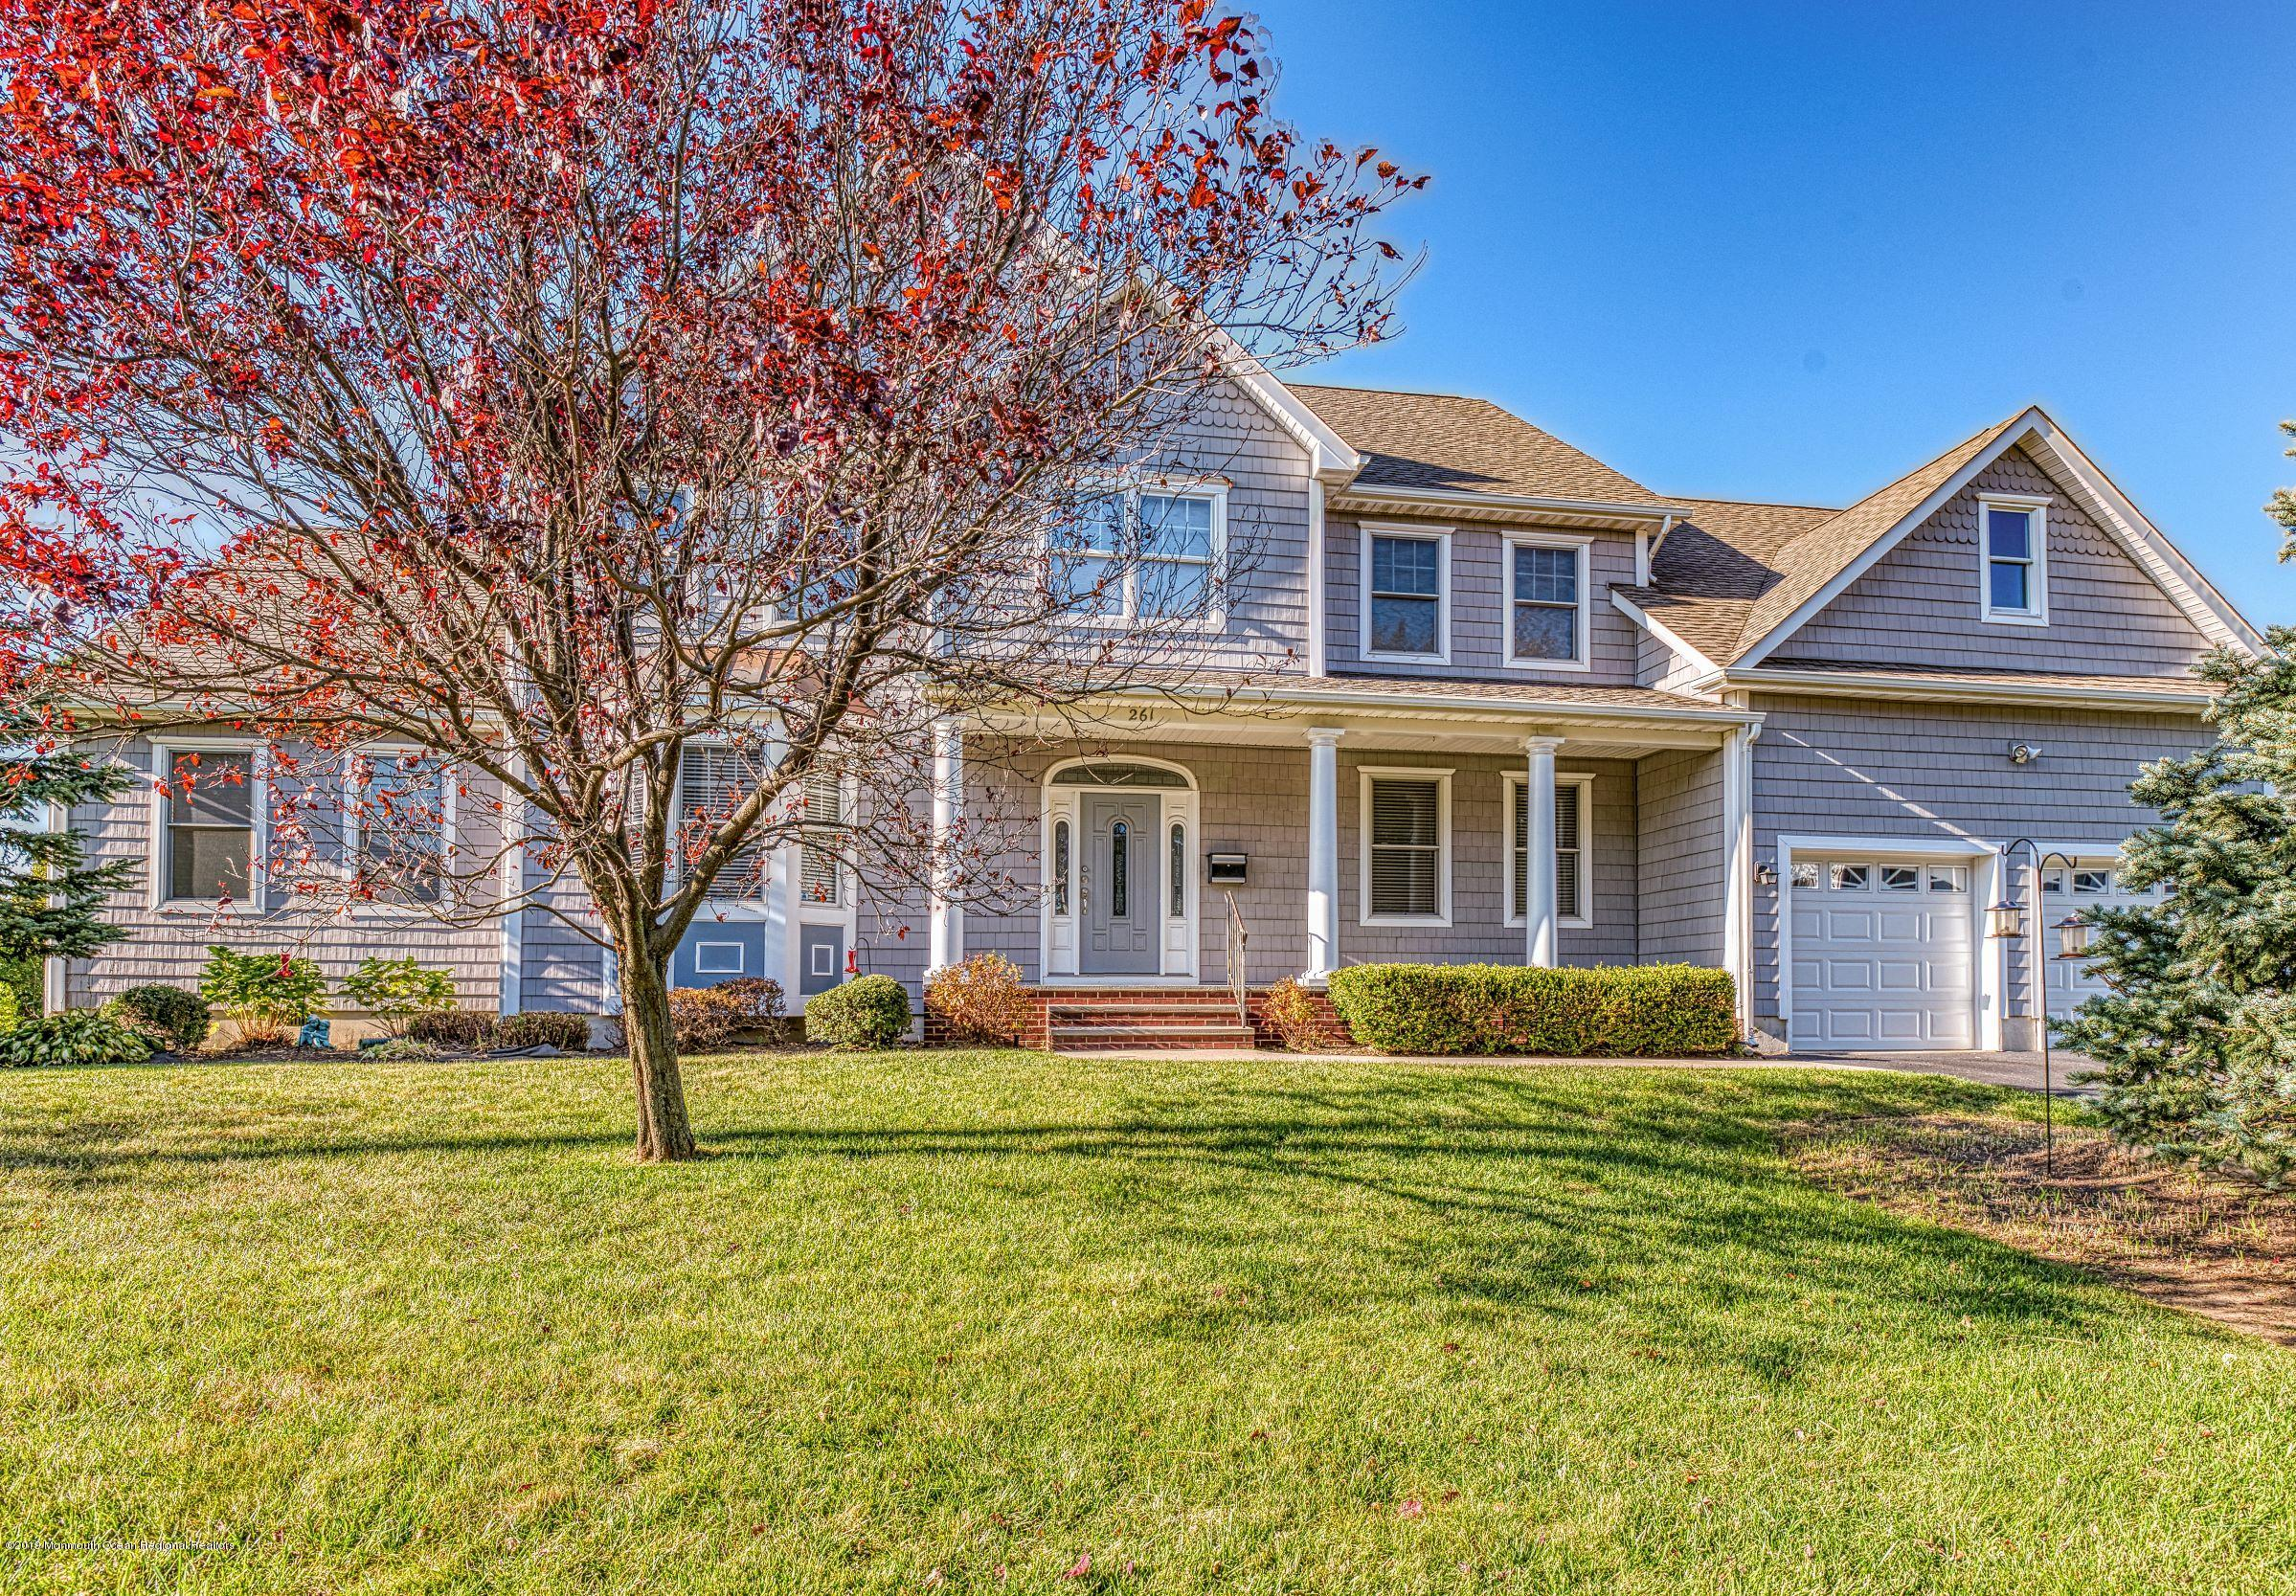 Photo of 261 Monmouth Boulevard, Oceanport, NJ 07757